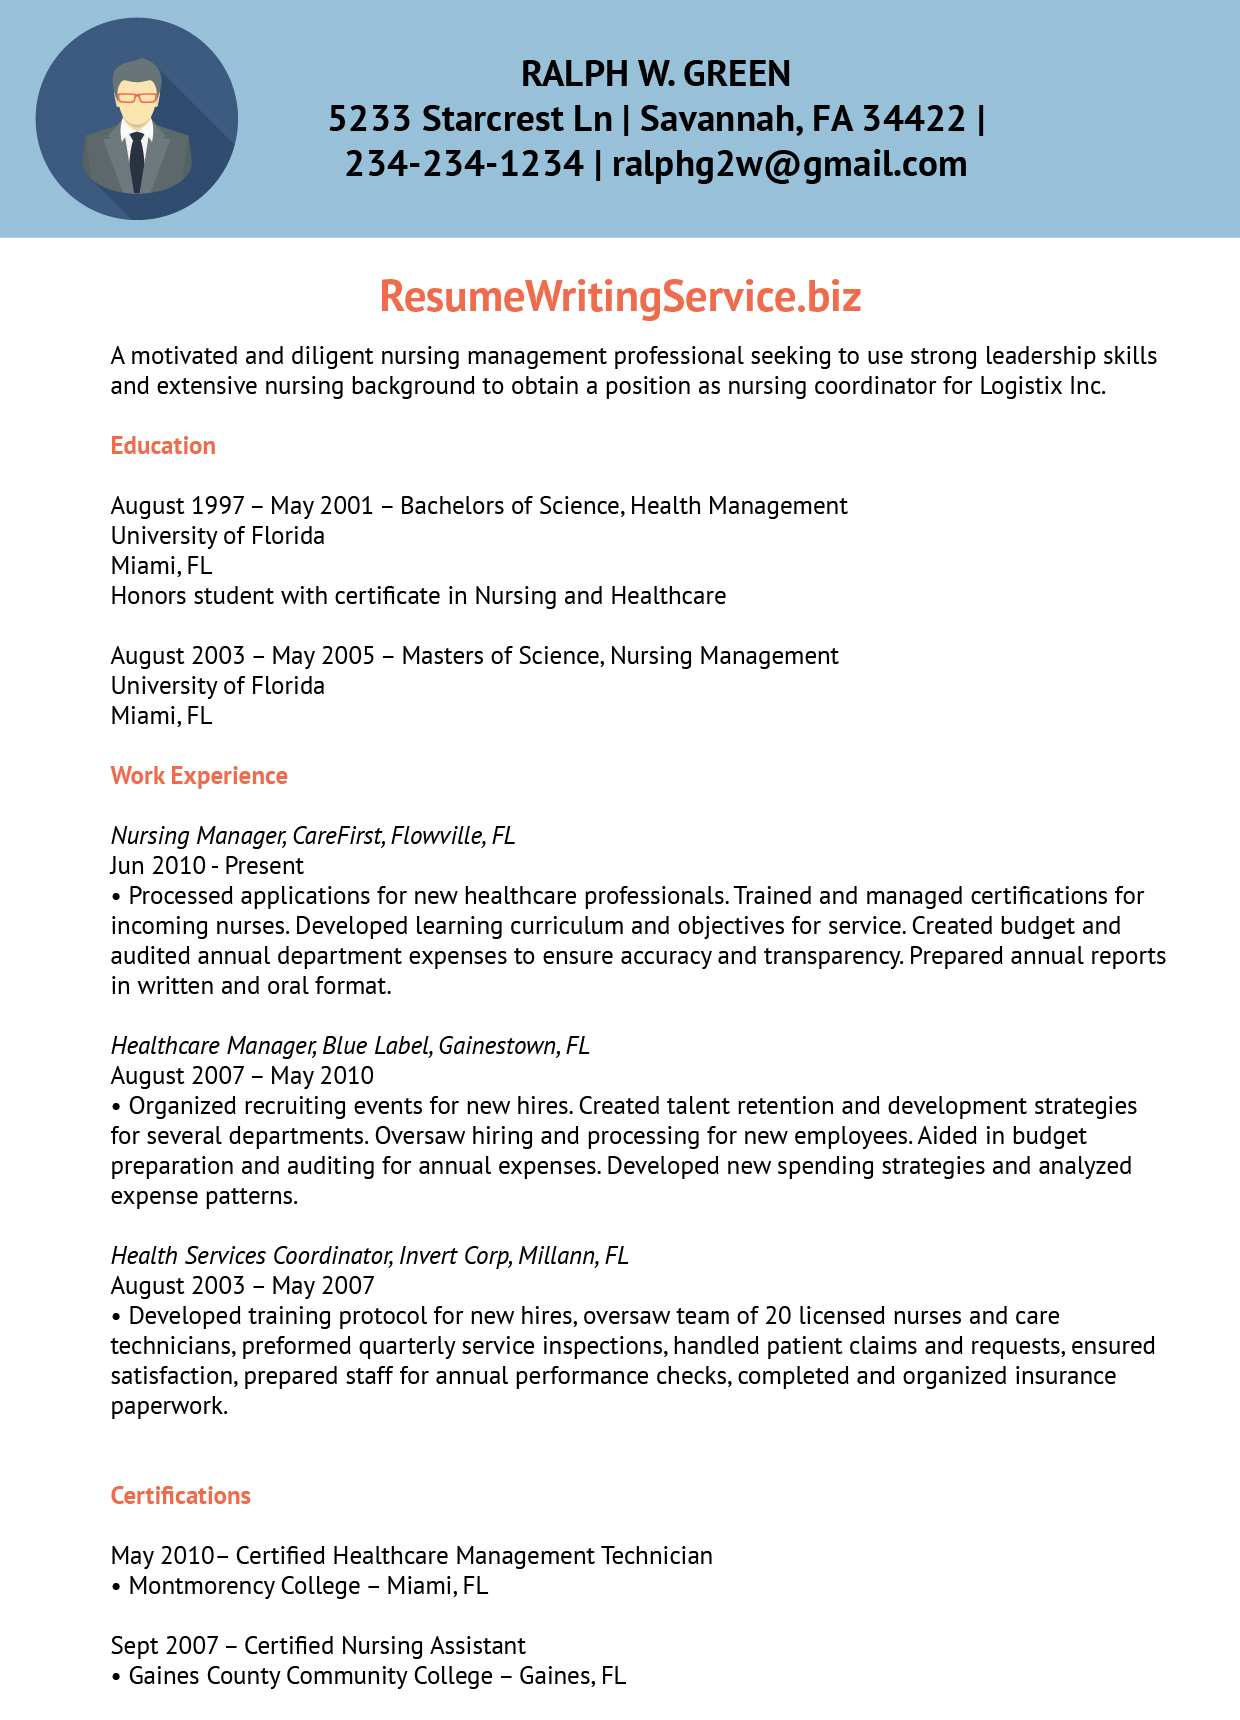 Nursing Program Coordinator Resume Sample Resume Writing